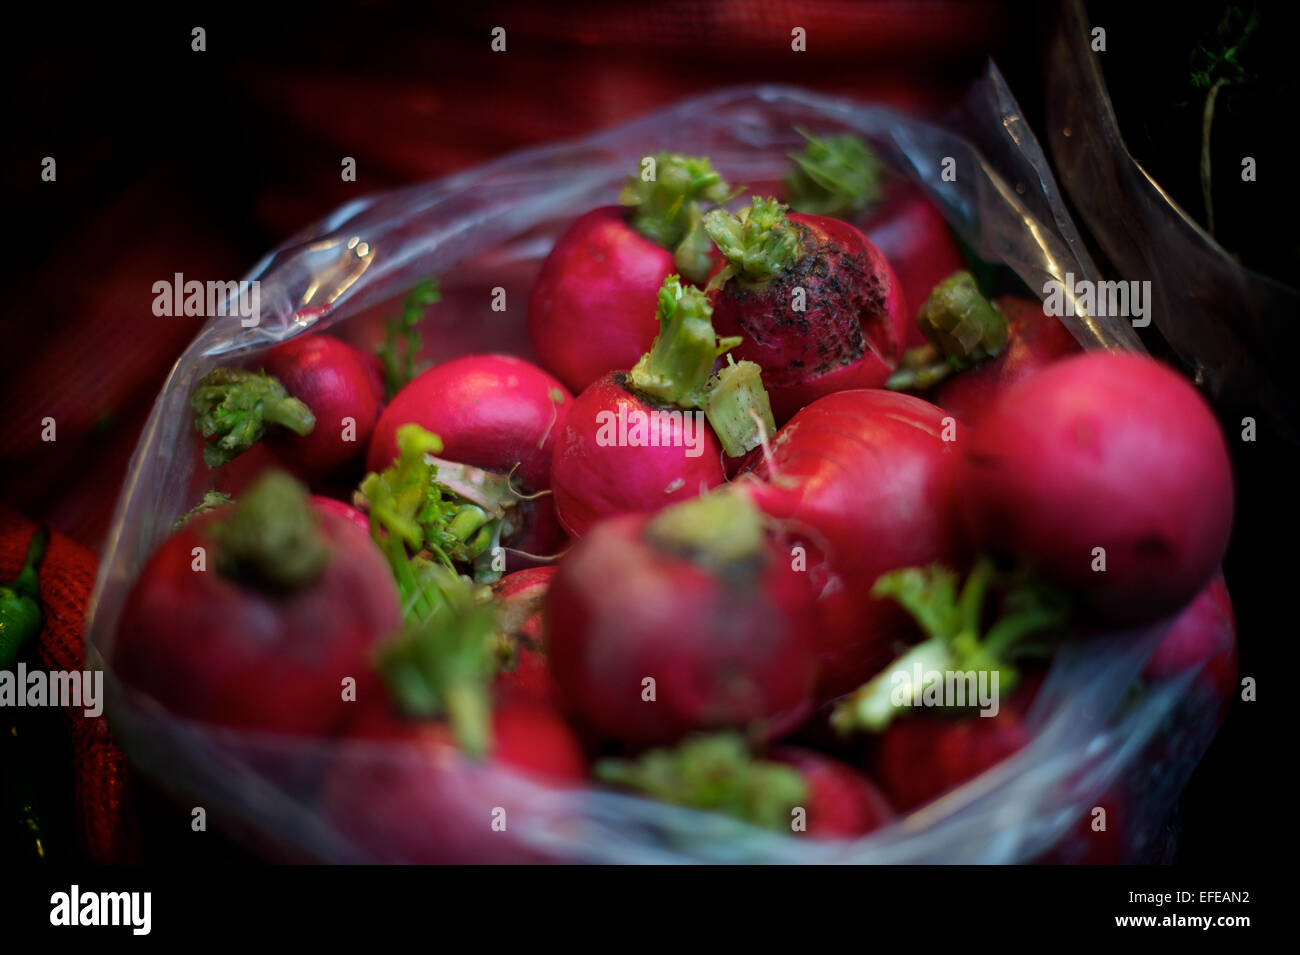 Radishes for sale at the market in the Kadikoy area (Asia)  is pictured as part of a photo essay on winter breaks - Stock Image